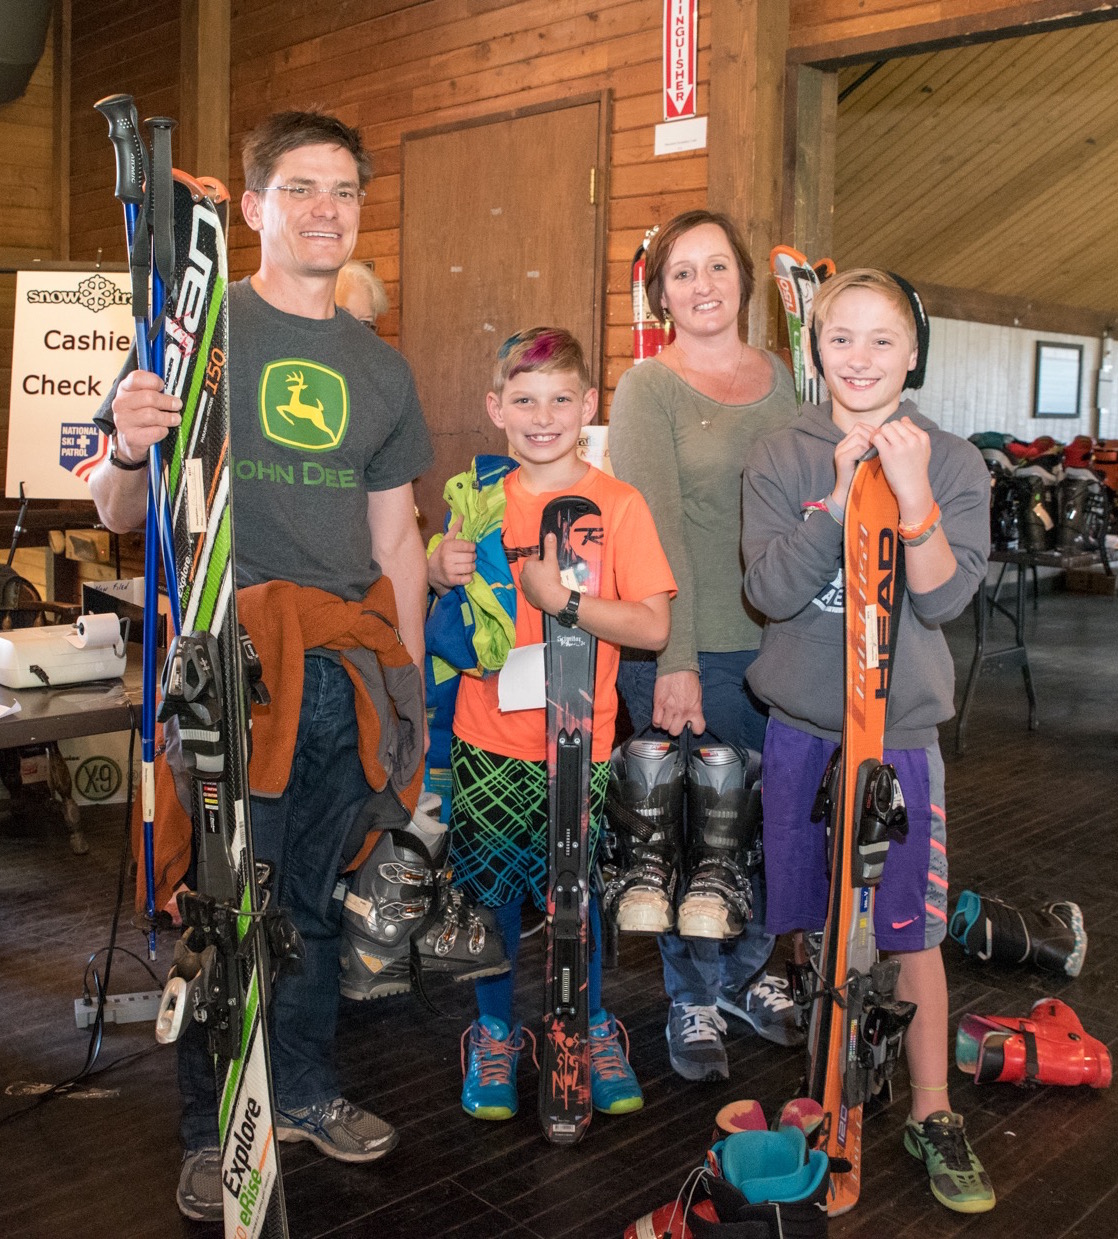 Cash for Your Ski and Snowboard Gear at Snow Trails